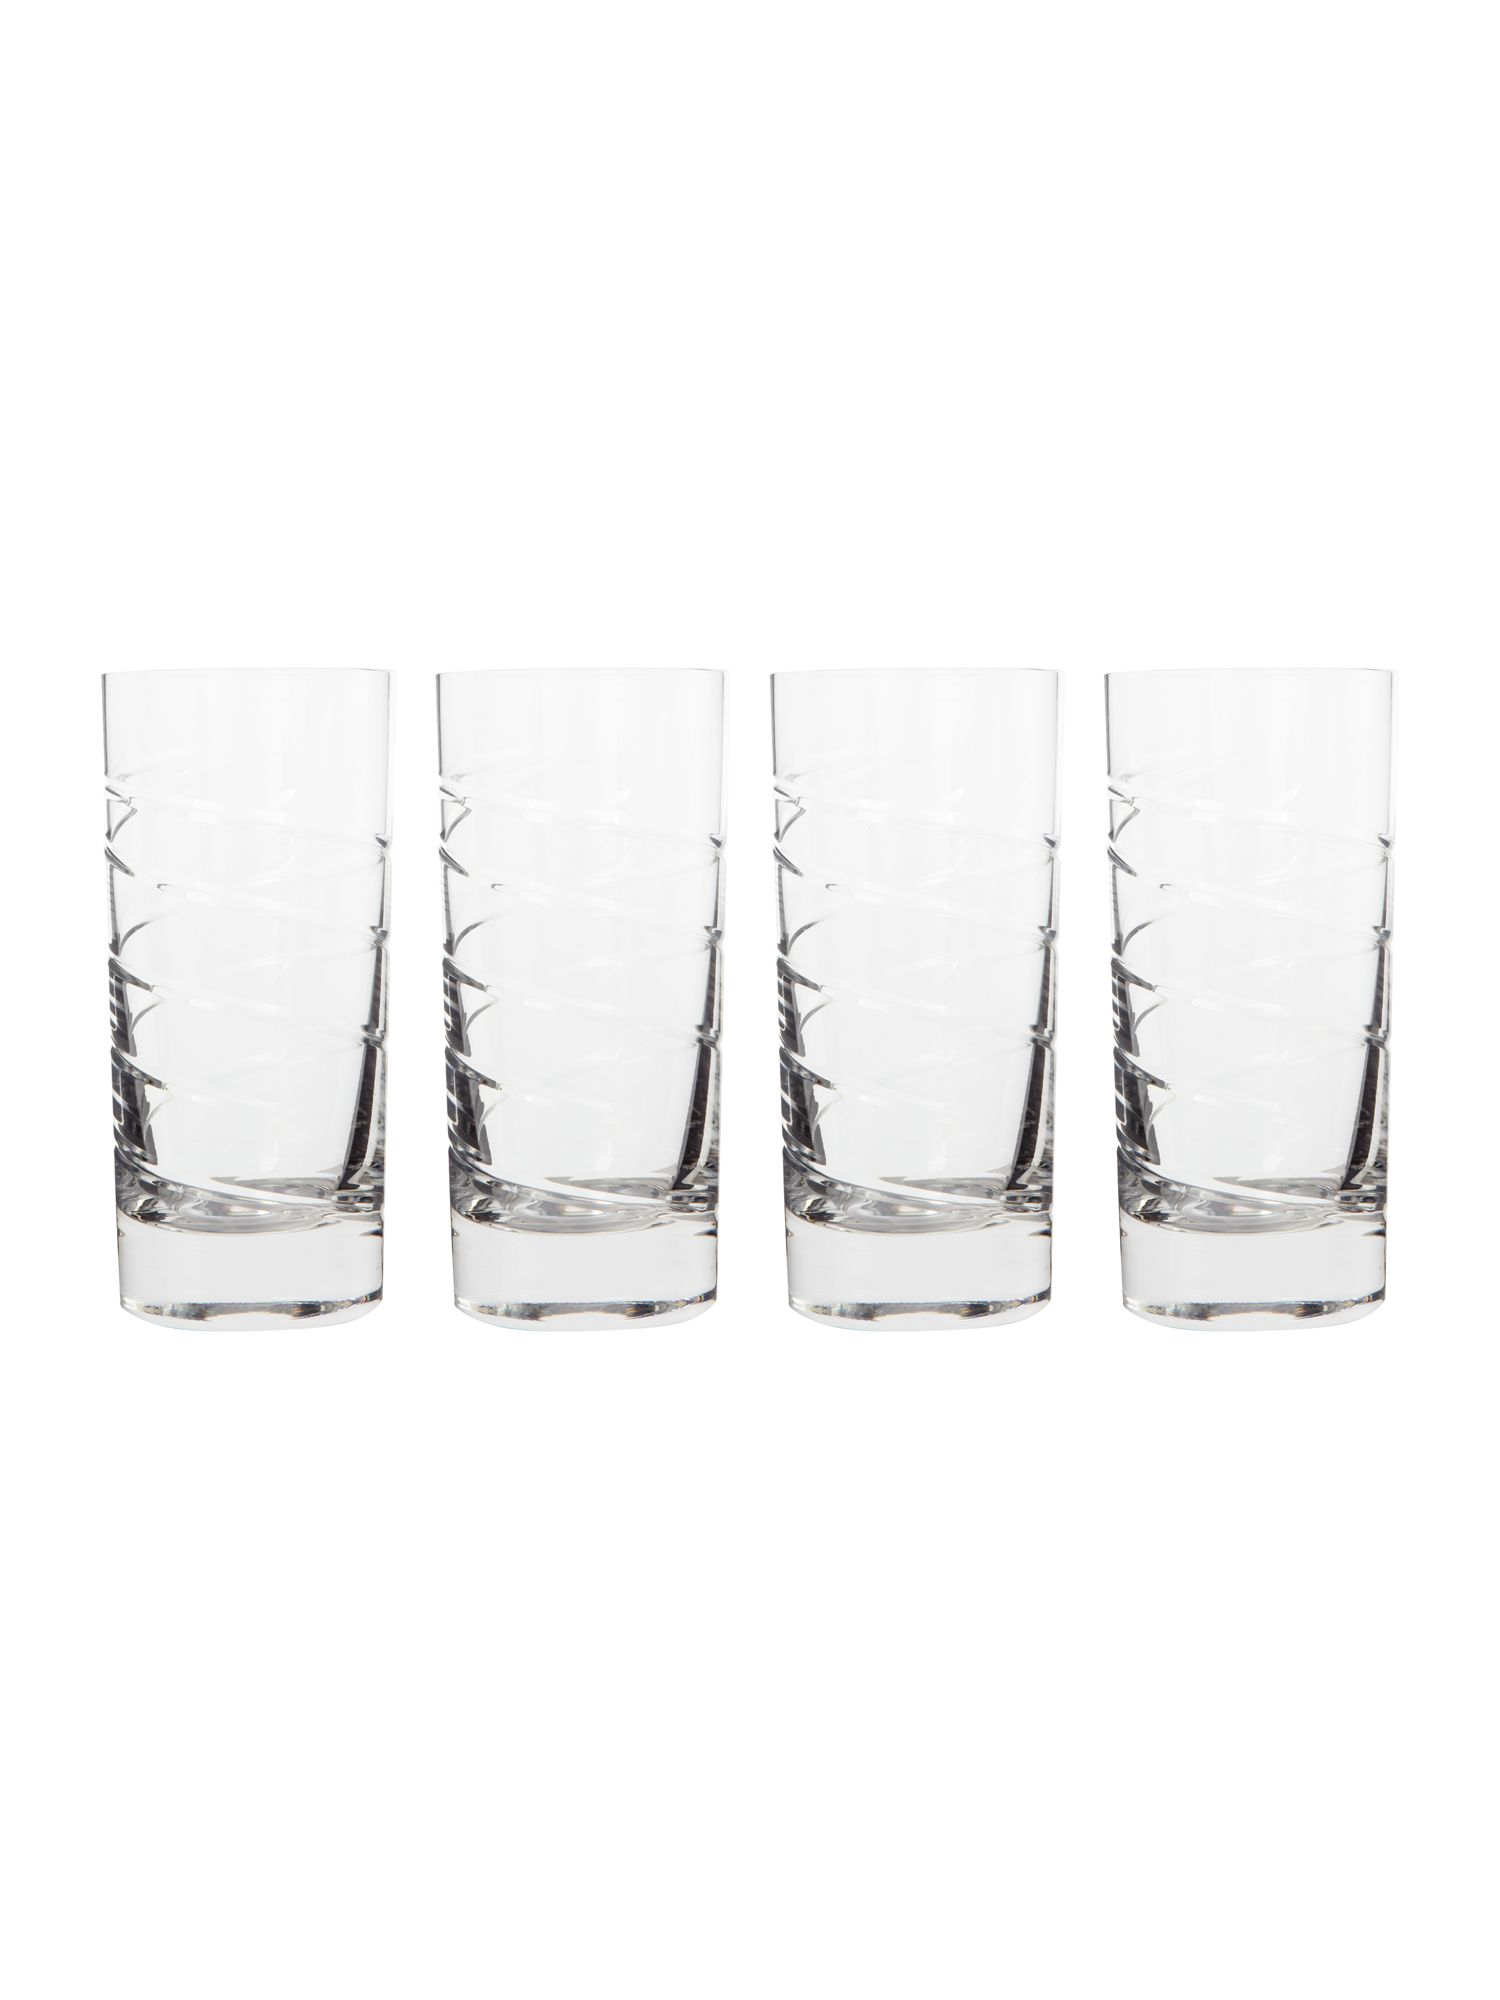 Sierra hiballs, set of 4